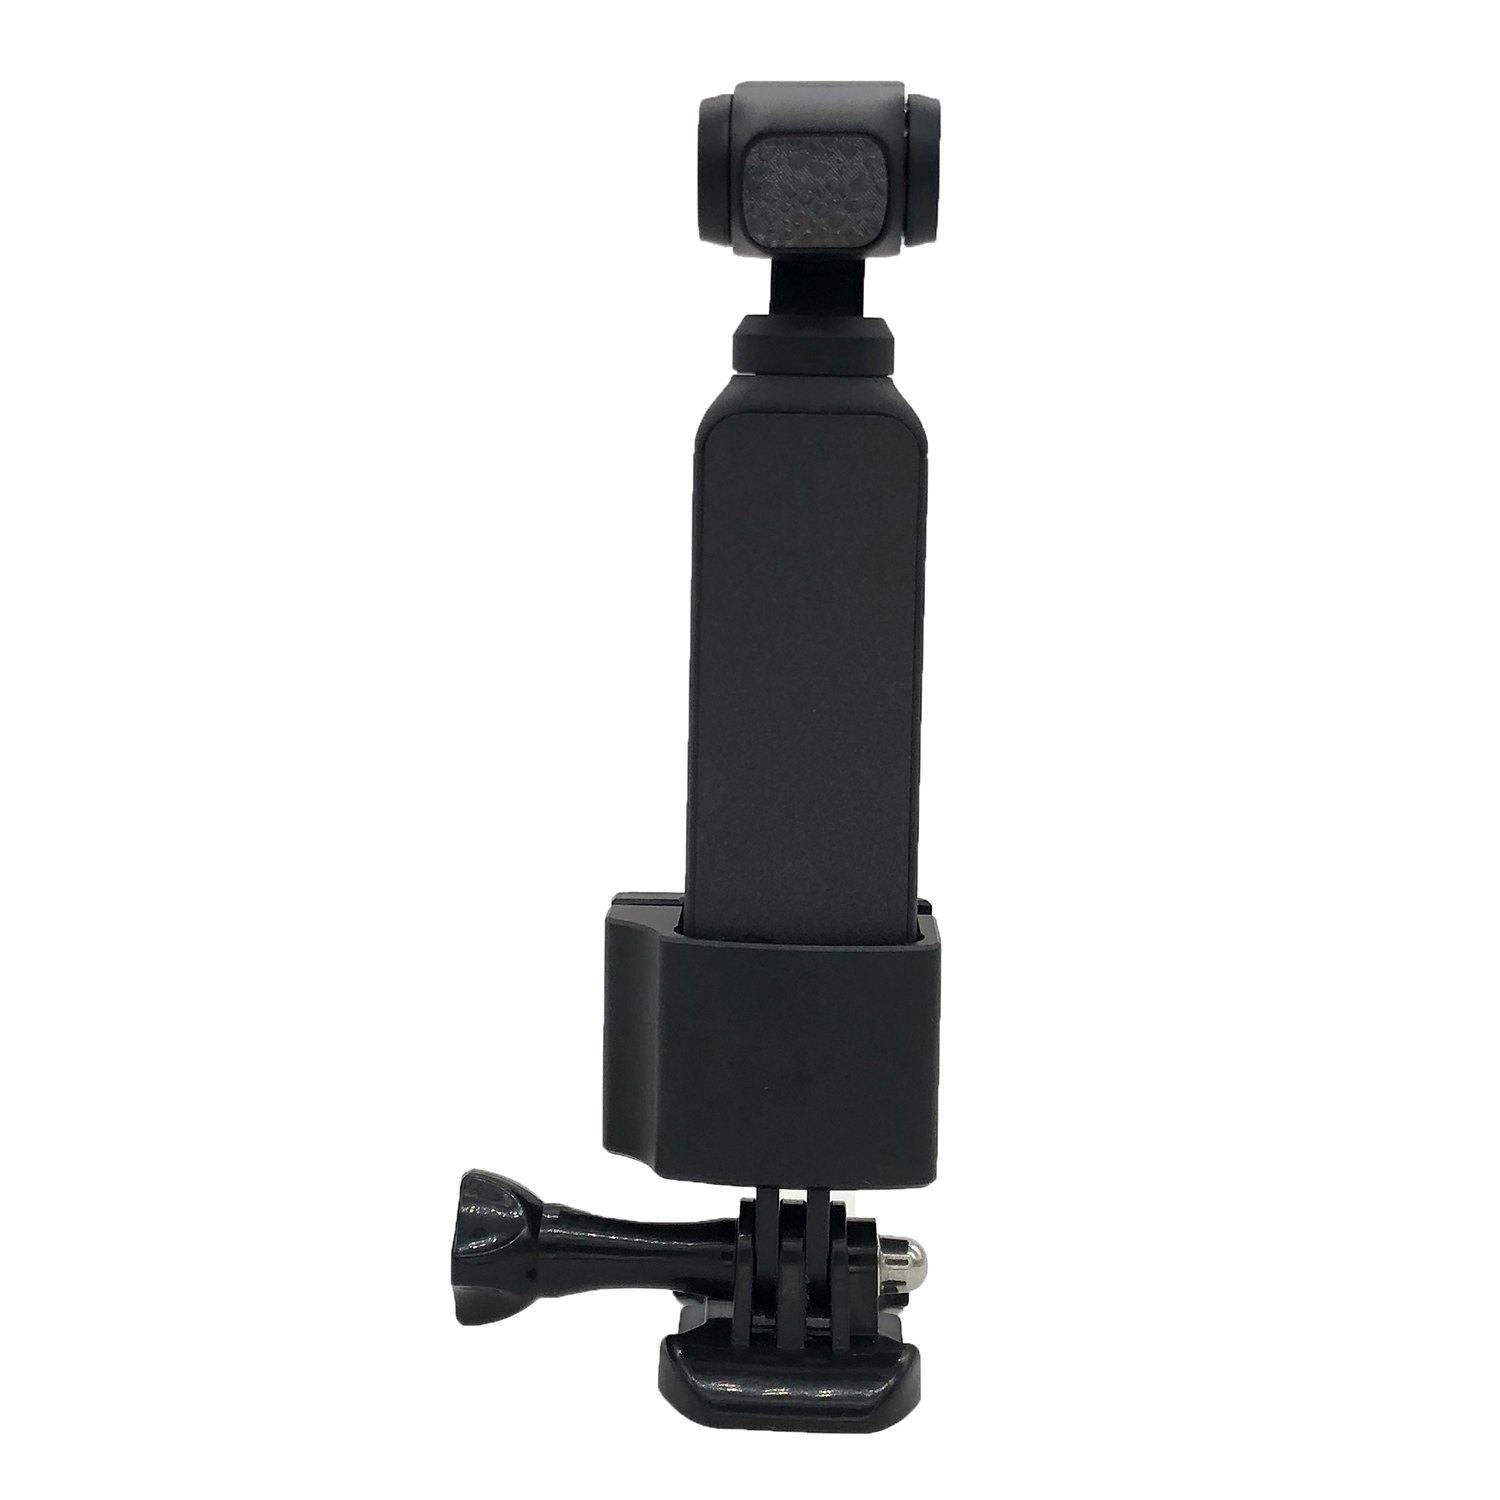 Camera Base Adapter Mount Accessoires Voor Osmo Pocket Statief Selfie Stok Houder Action Camera Montage